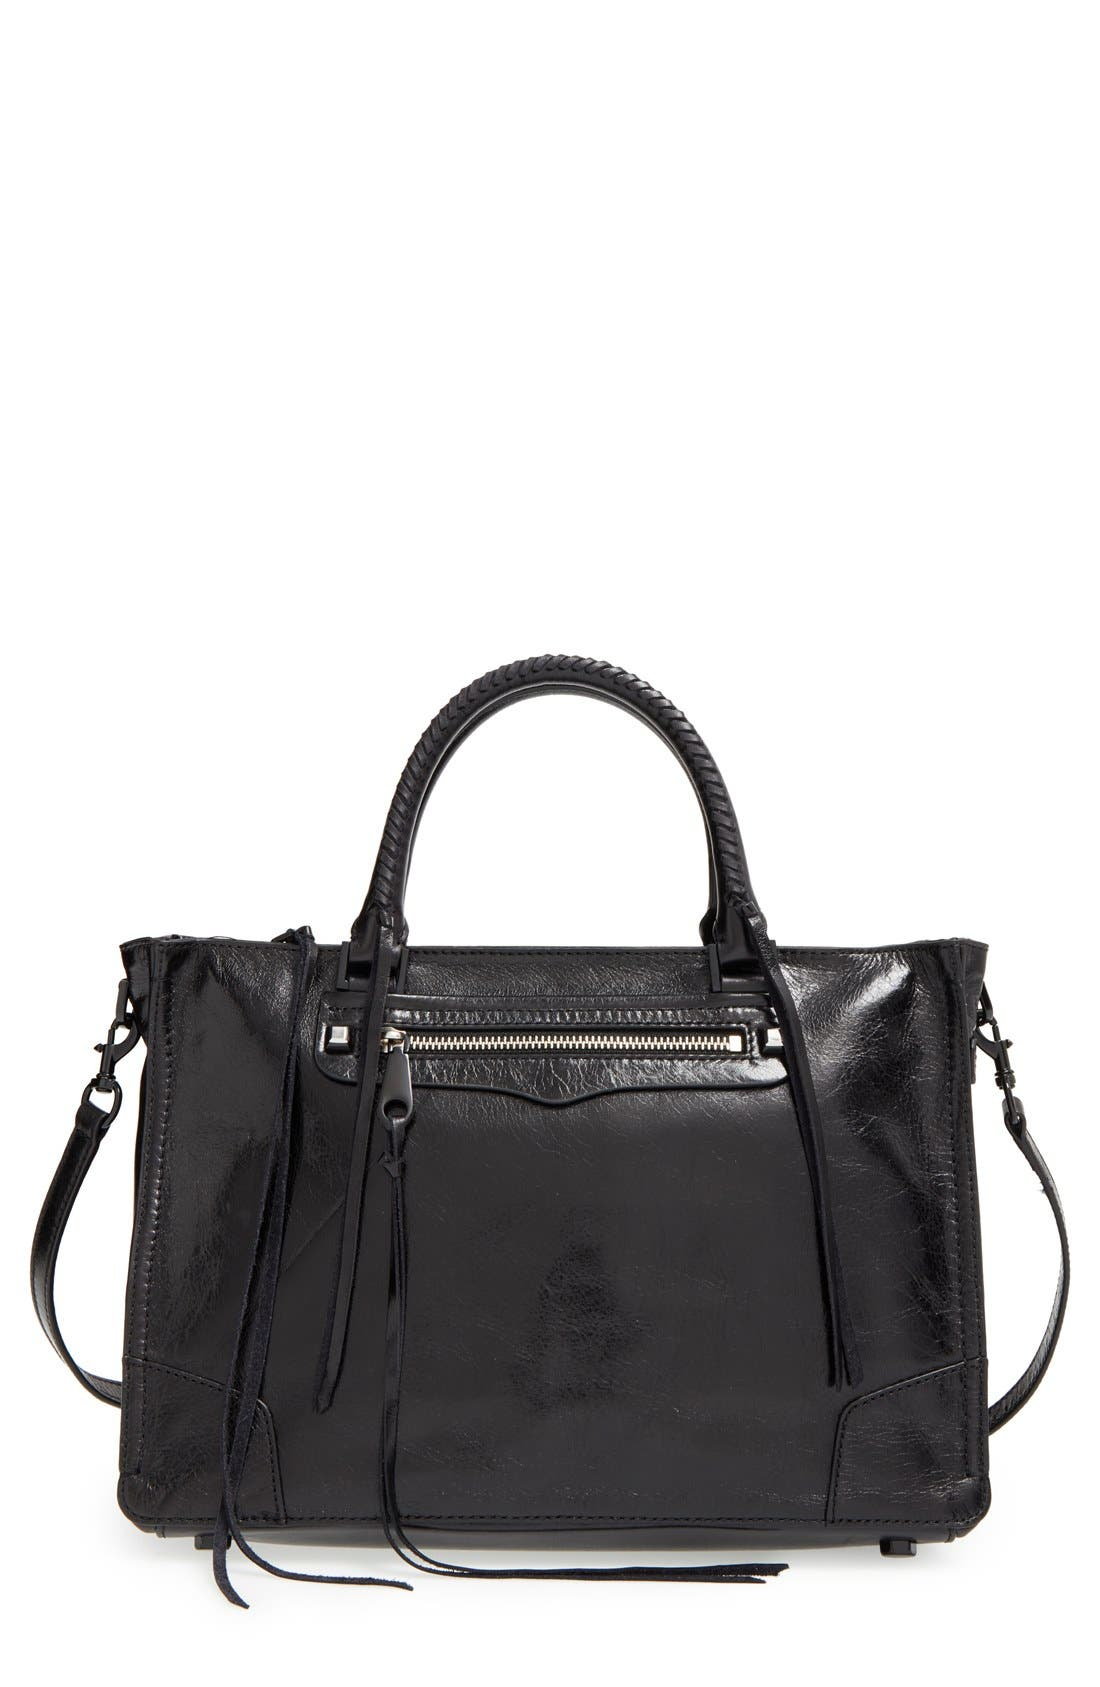 Satchel Purses & Handbags | Nordstrom